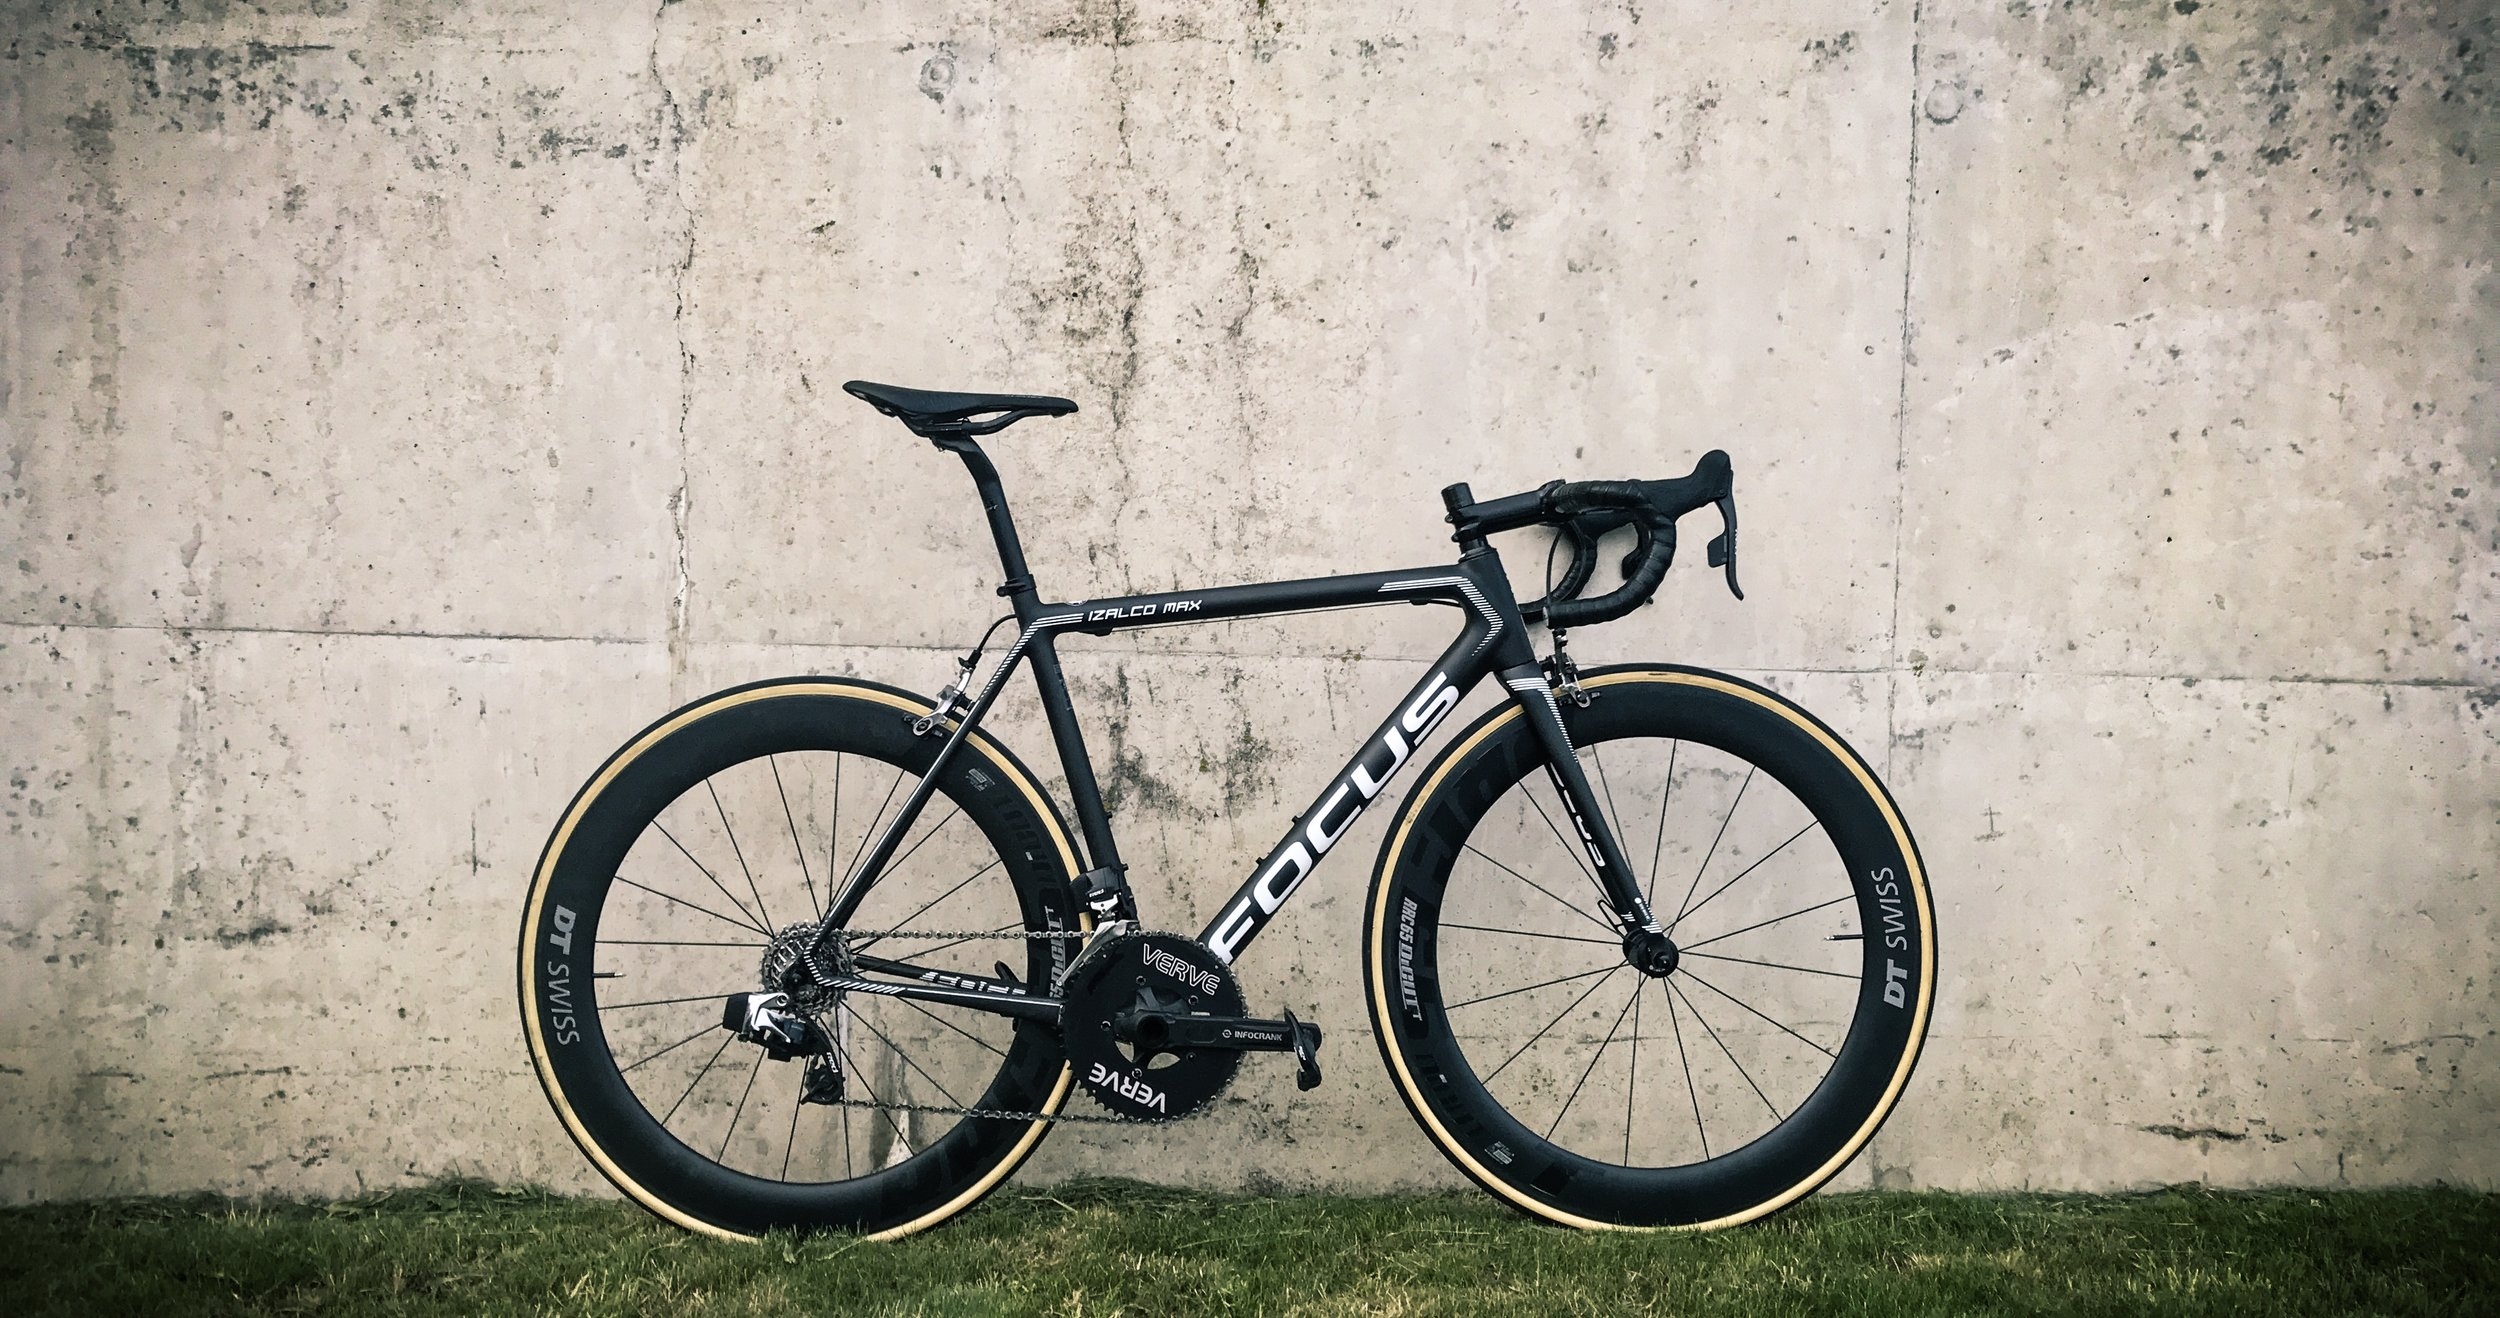 The FOCUS Izalco Max Etap fitted with a Verve Infocrank powermeter and some deep section DT Swiss tubs for the 9 man team time trial